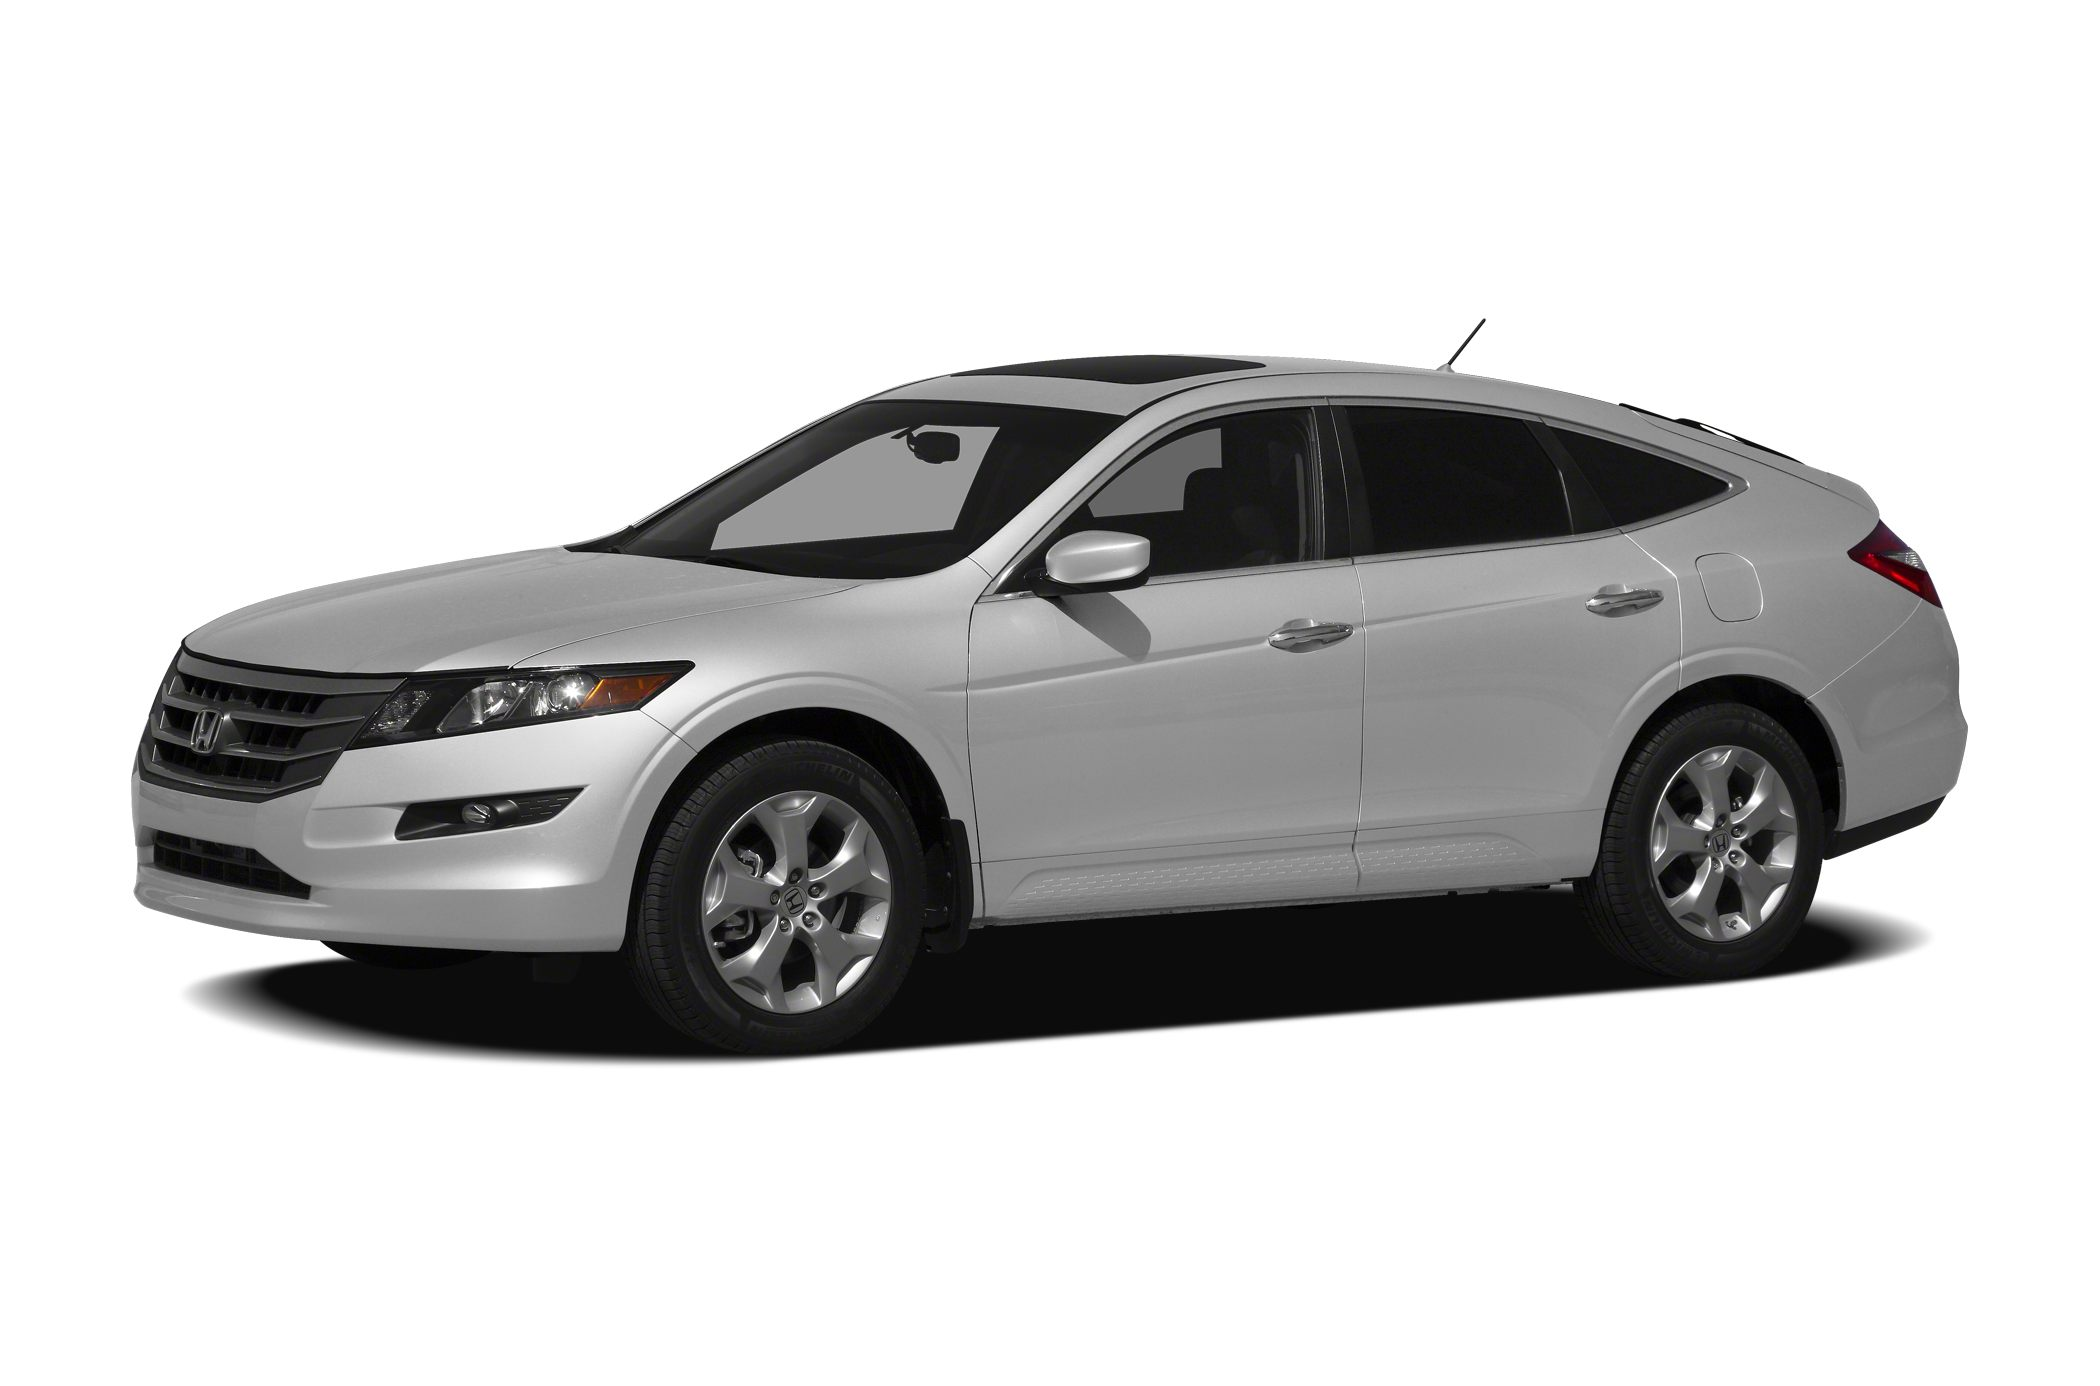 2012 Honda Crosstour  Miles 77315Color White Stock SB16316A VIN 5J6TF1H55CL003958